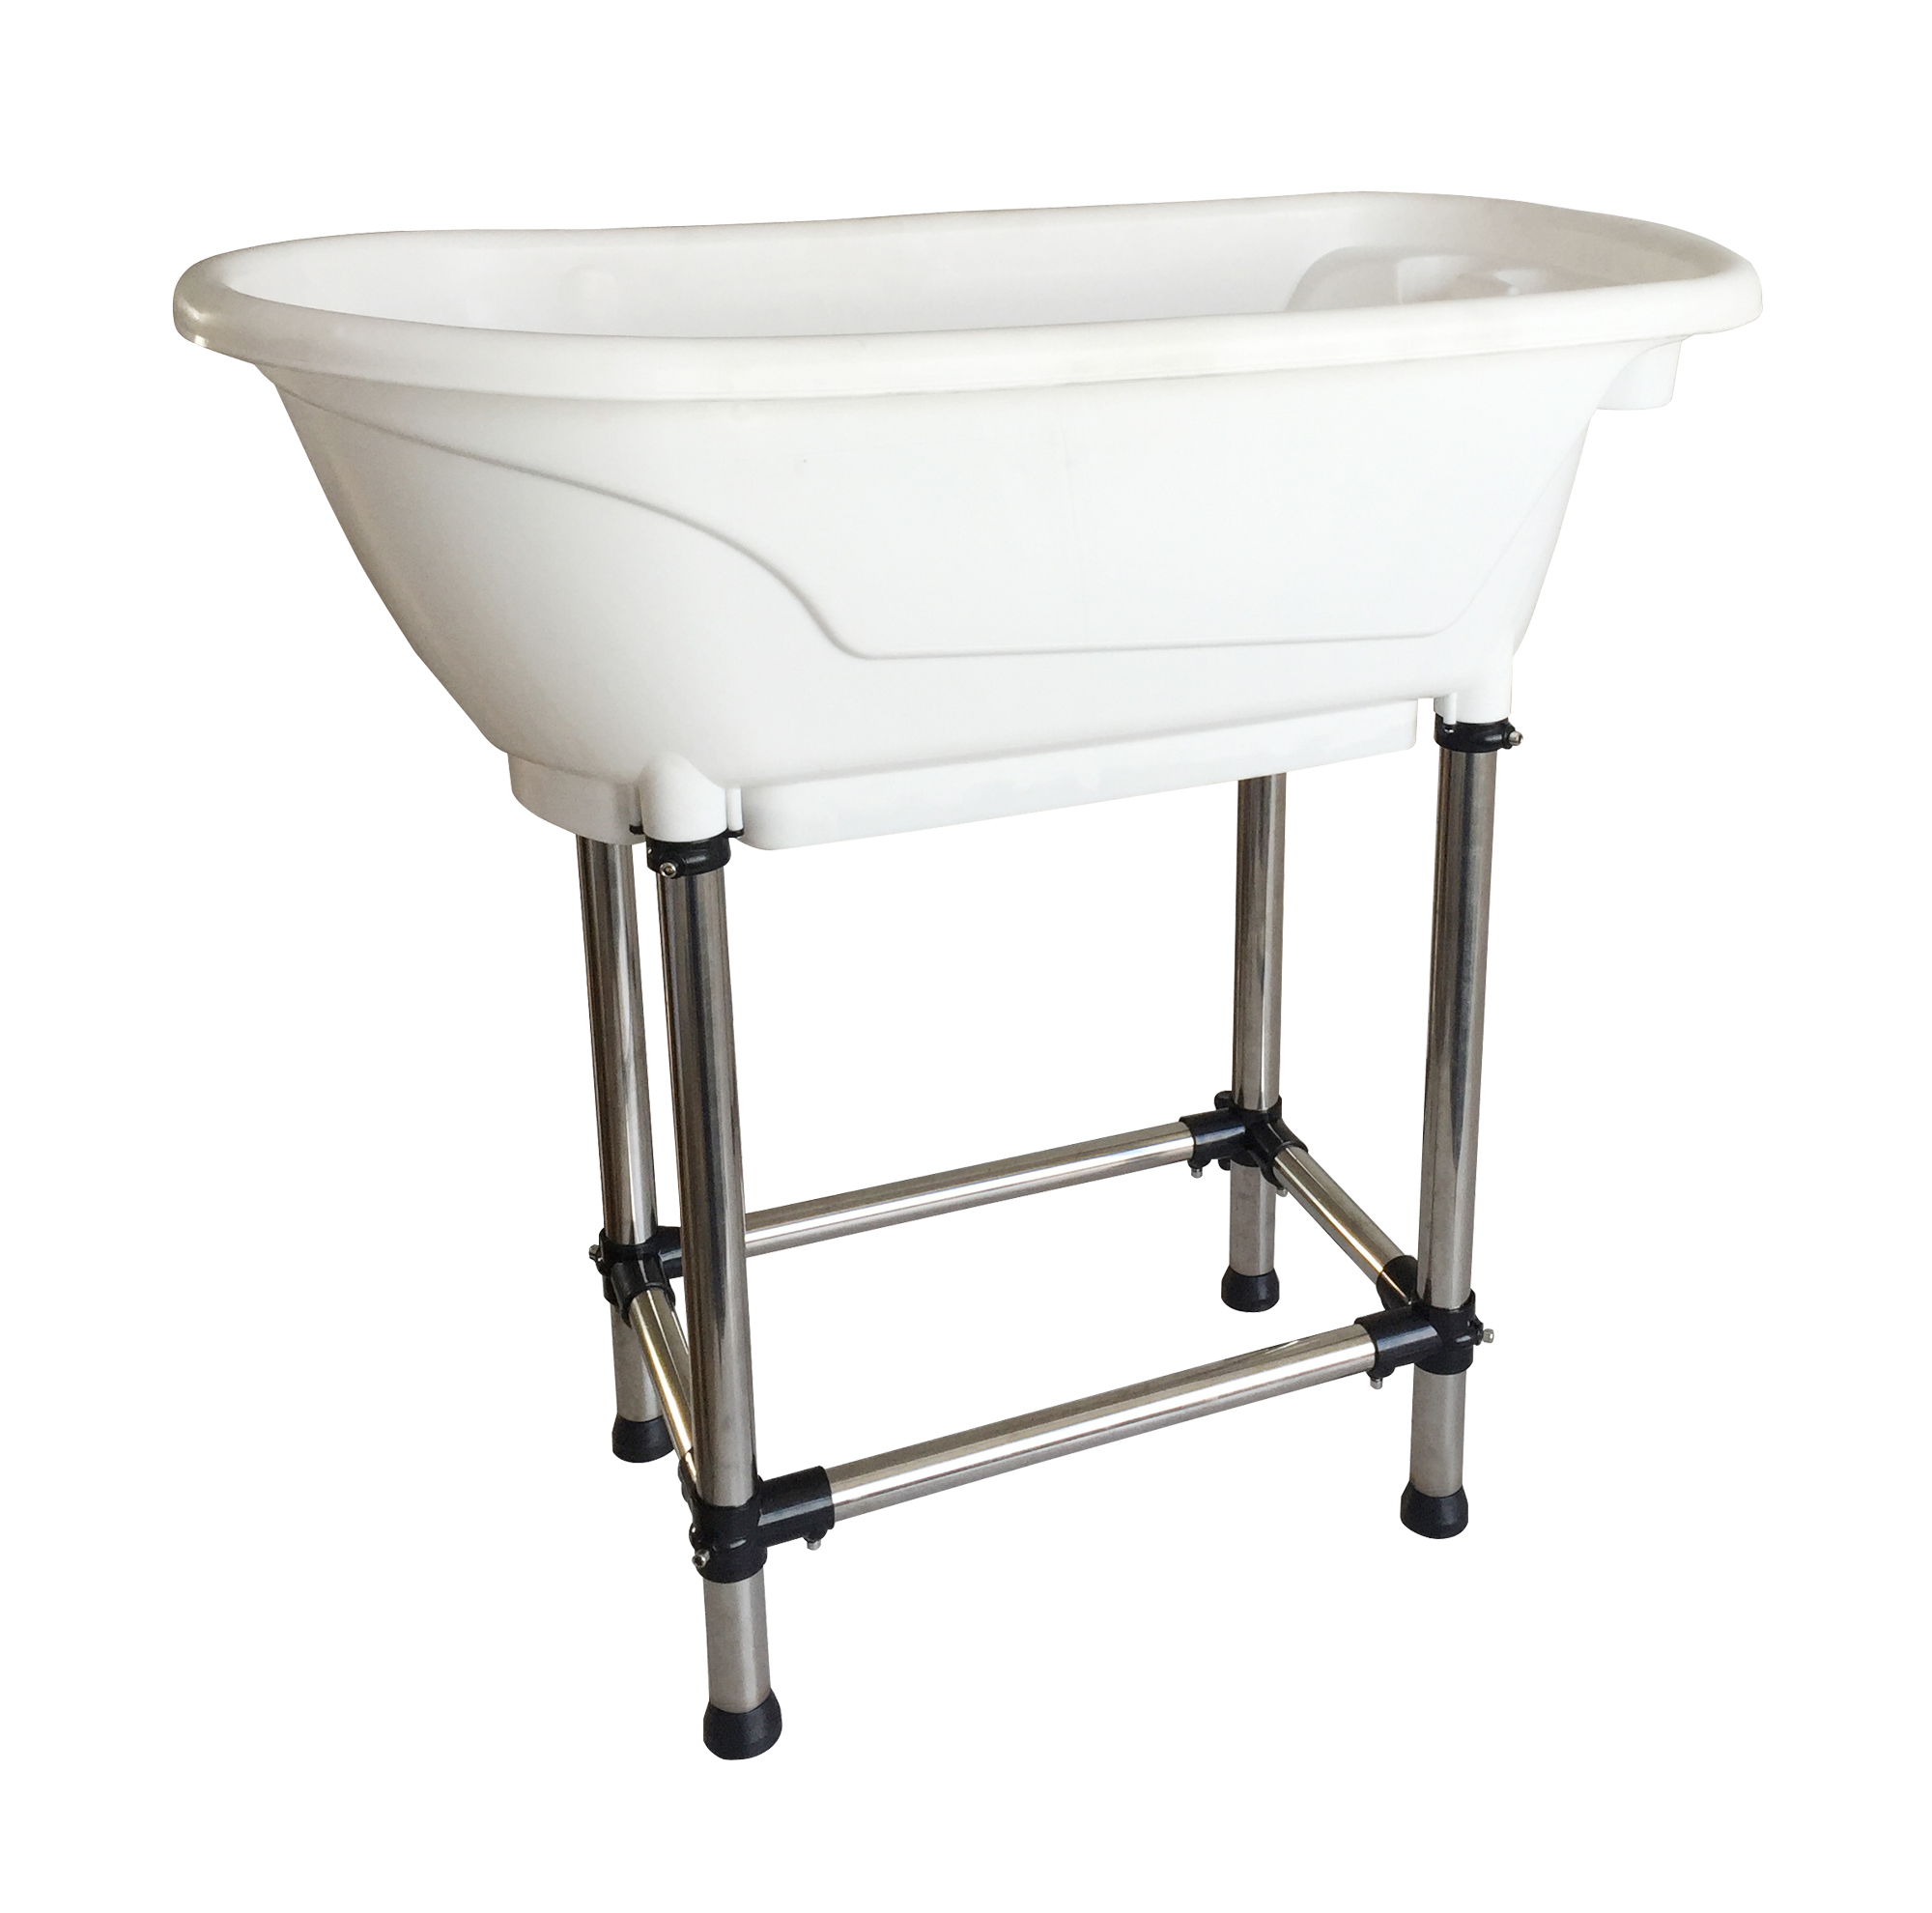 M8 Large Pet Products Pet Bathtub Non-slip Bath Tub For Dog And Cat Not Bend Over With High Stainless Steel Legs Easy Install